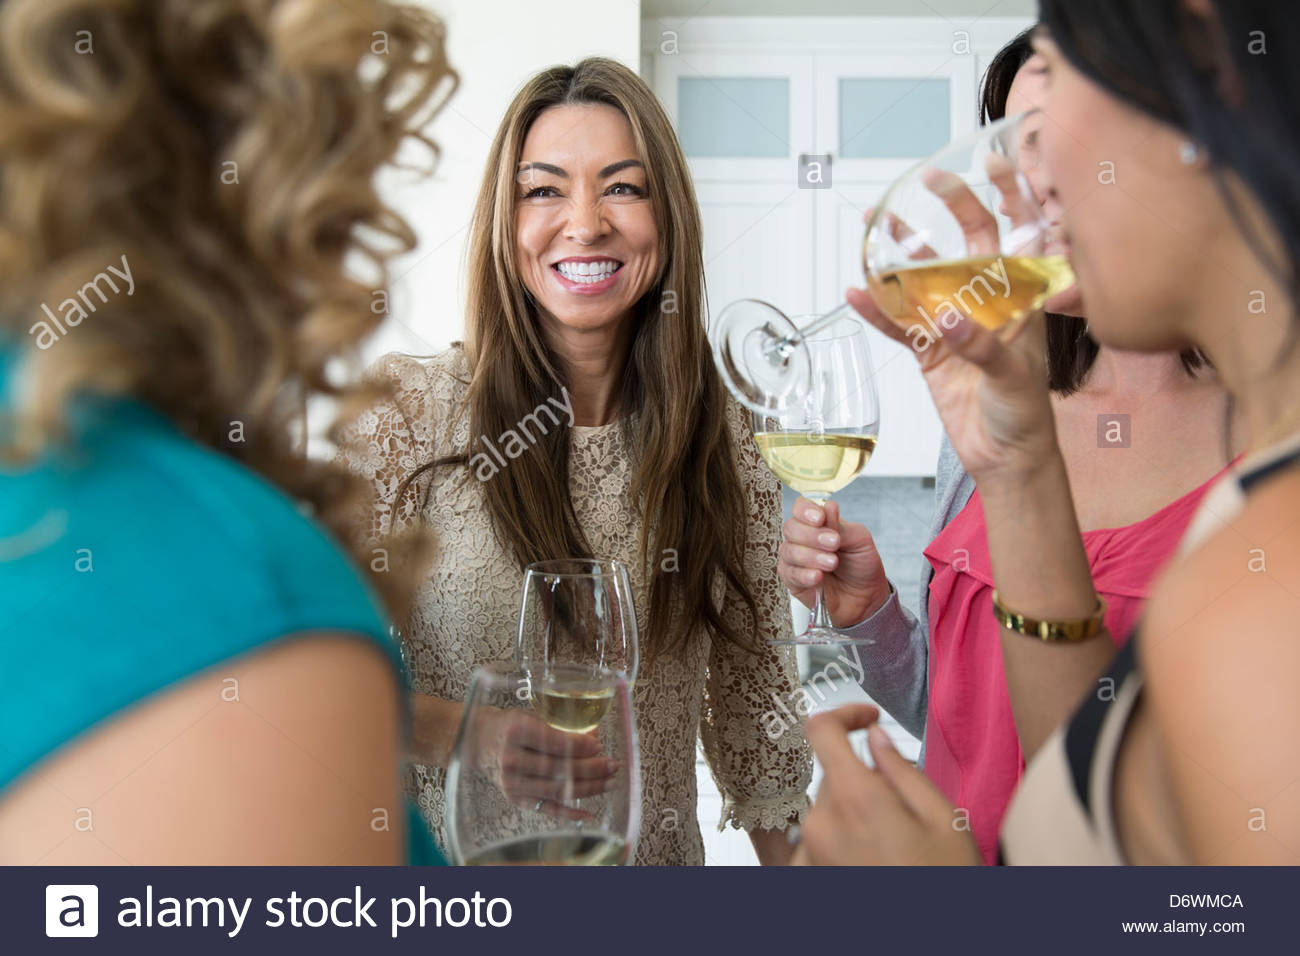 Mature Woman with female friends enjoying house party Photo Stock